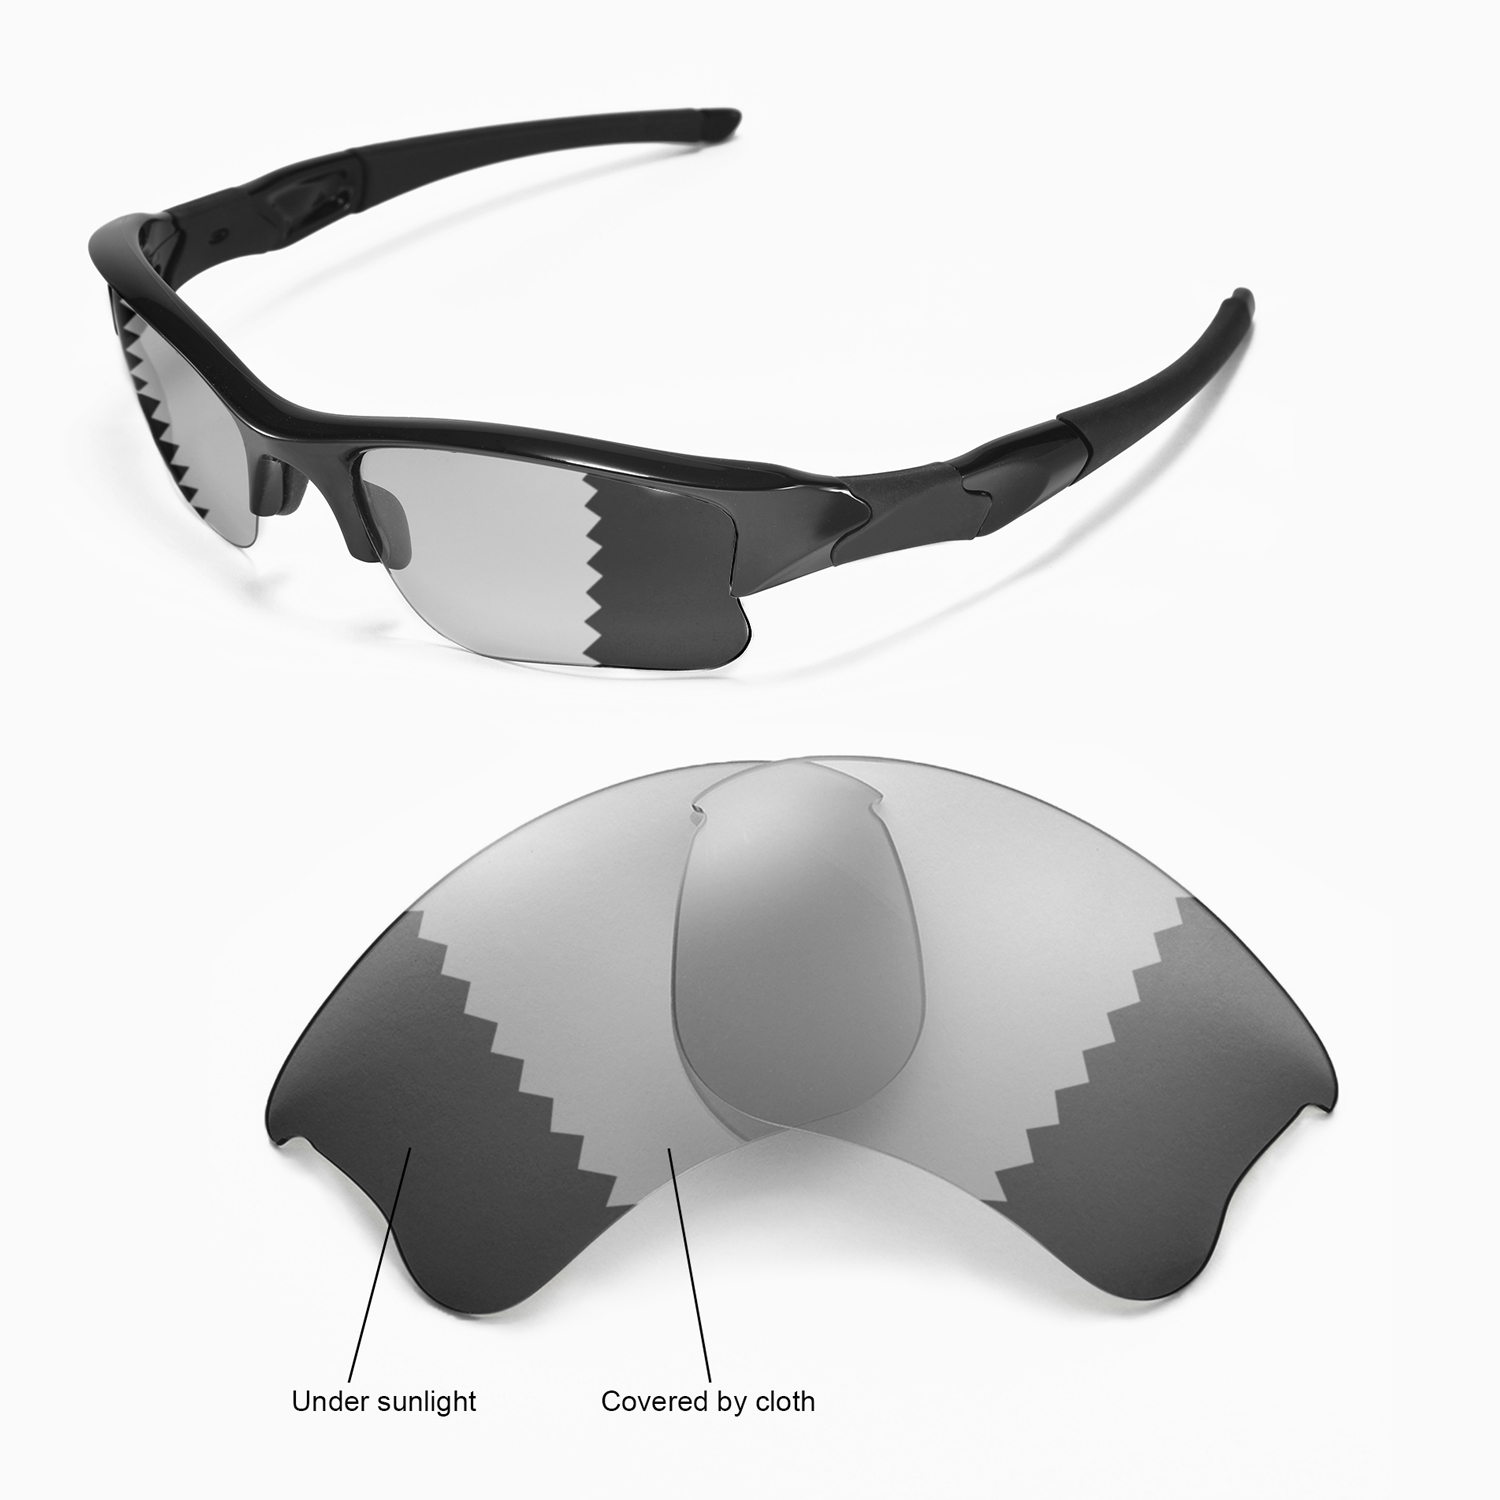 c258796550b Details about New Walleva Polarized Transition Photochromic Lenses For  Oakley Flak Jacket XLJ